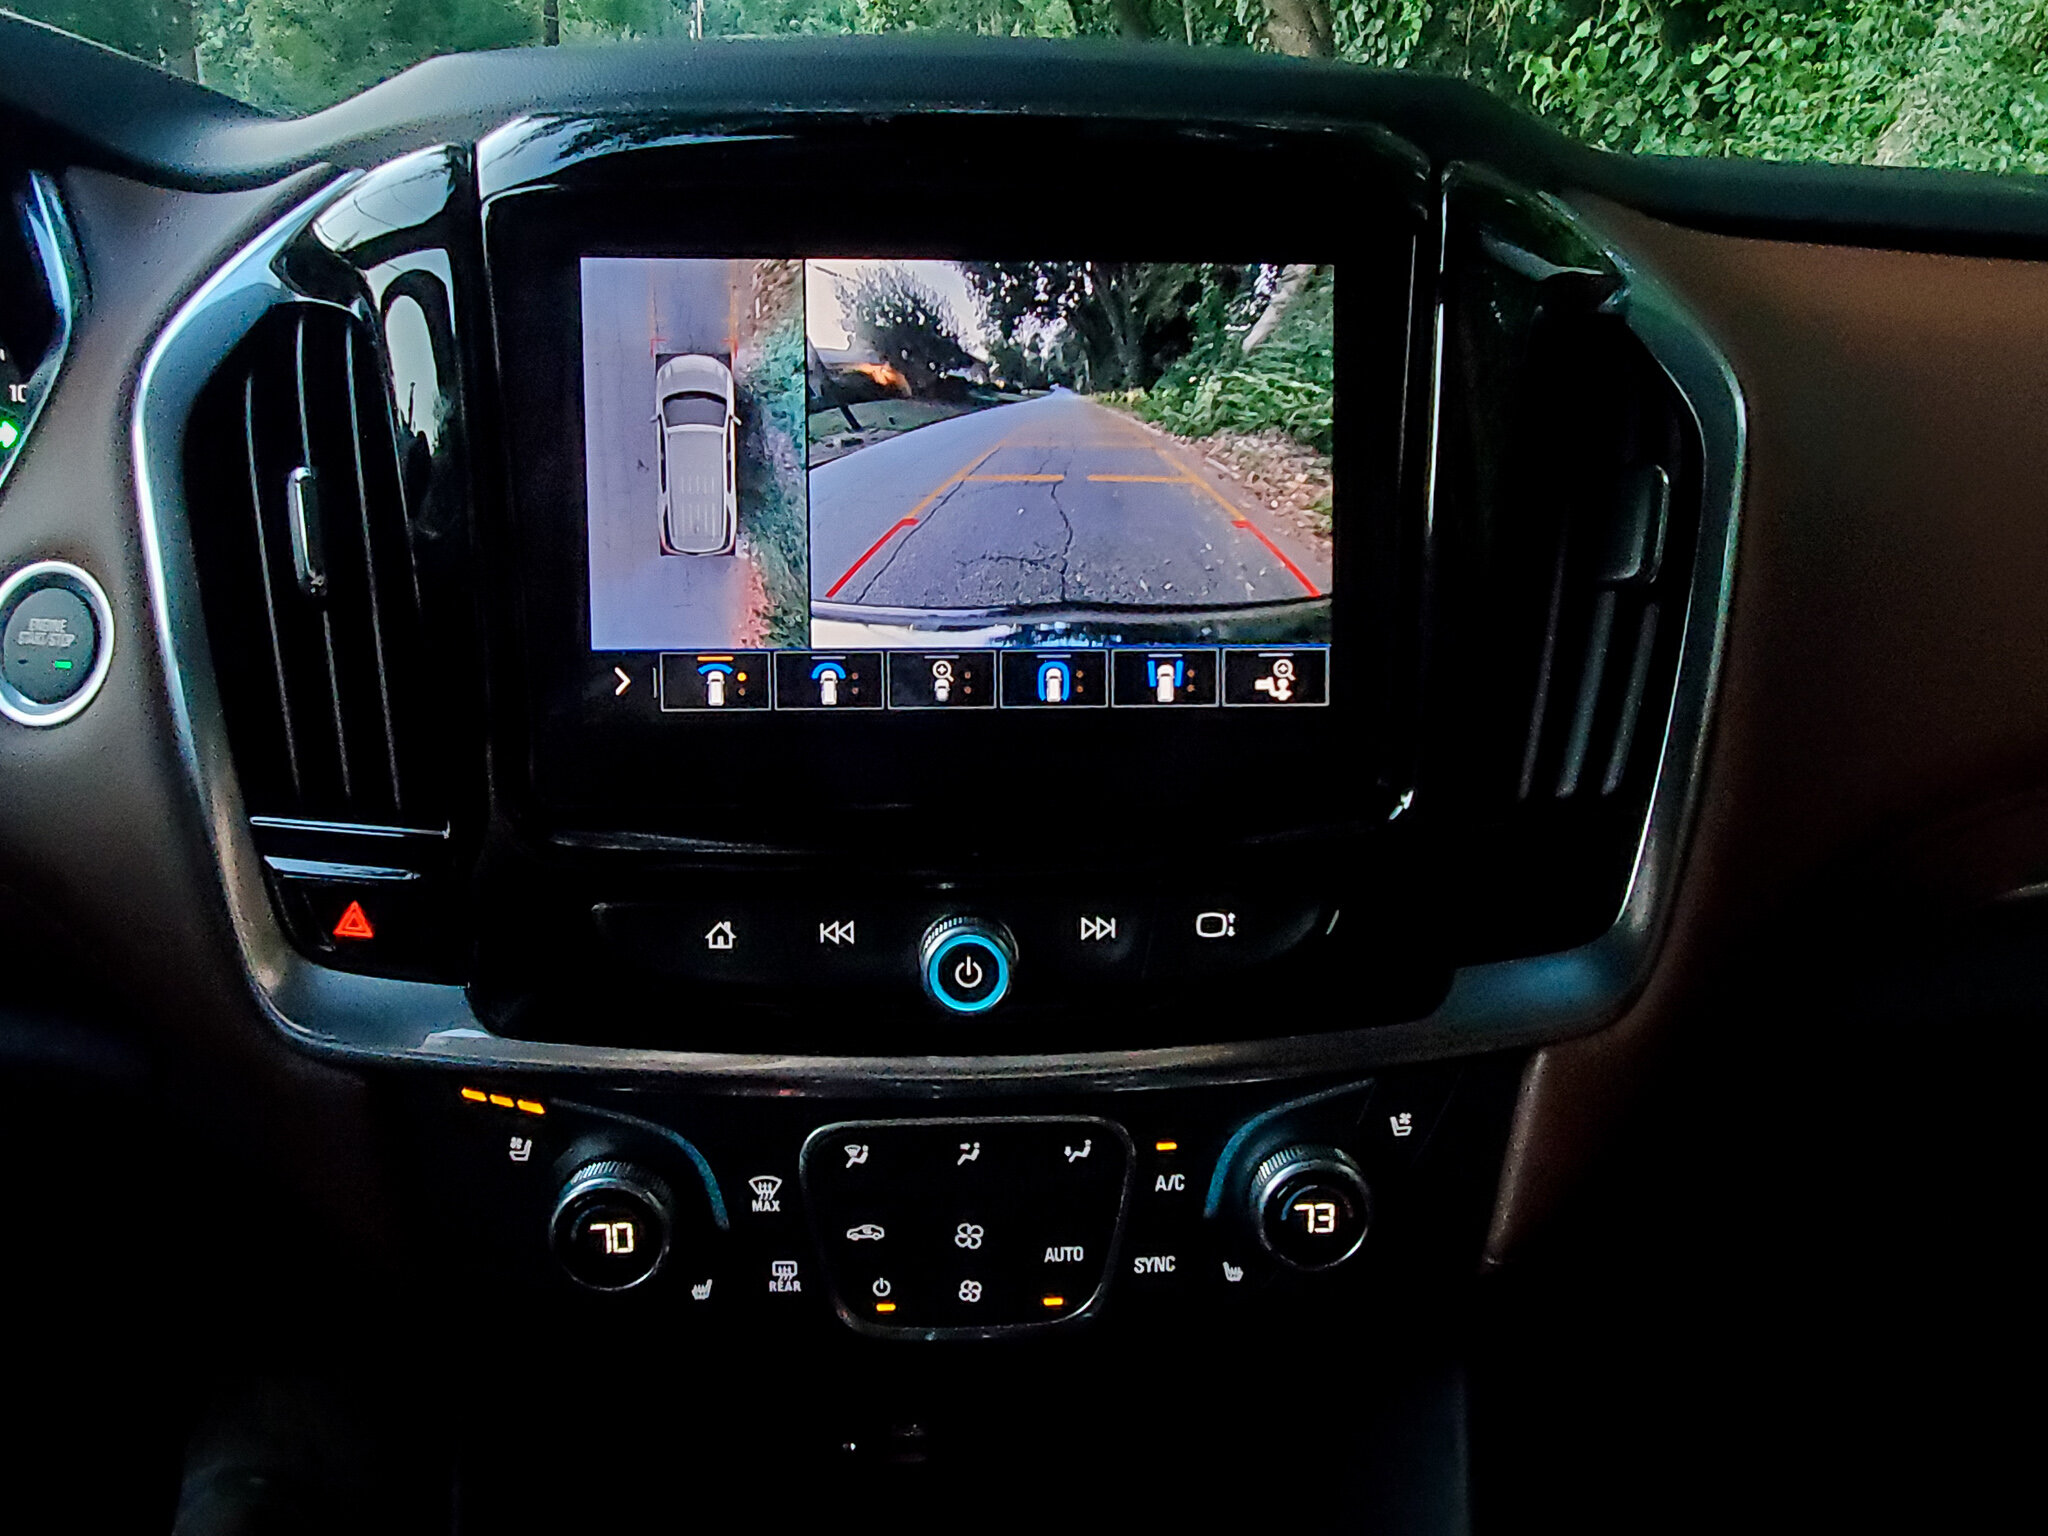 Surround Vision gives the driver a 360-degree view of the exterior of the Chevy Traverse (c) Anna Lanfreschi